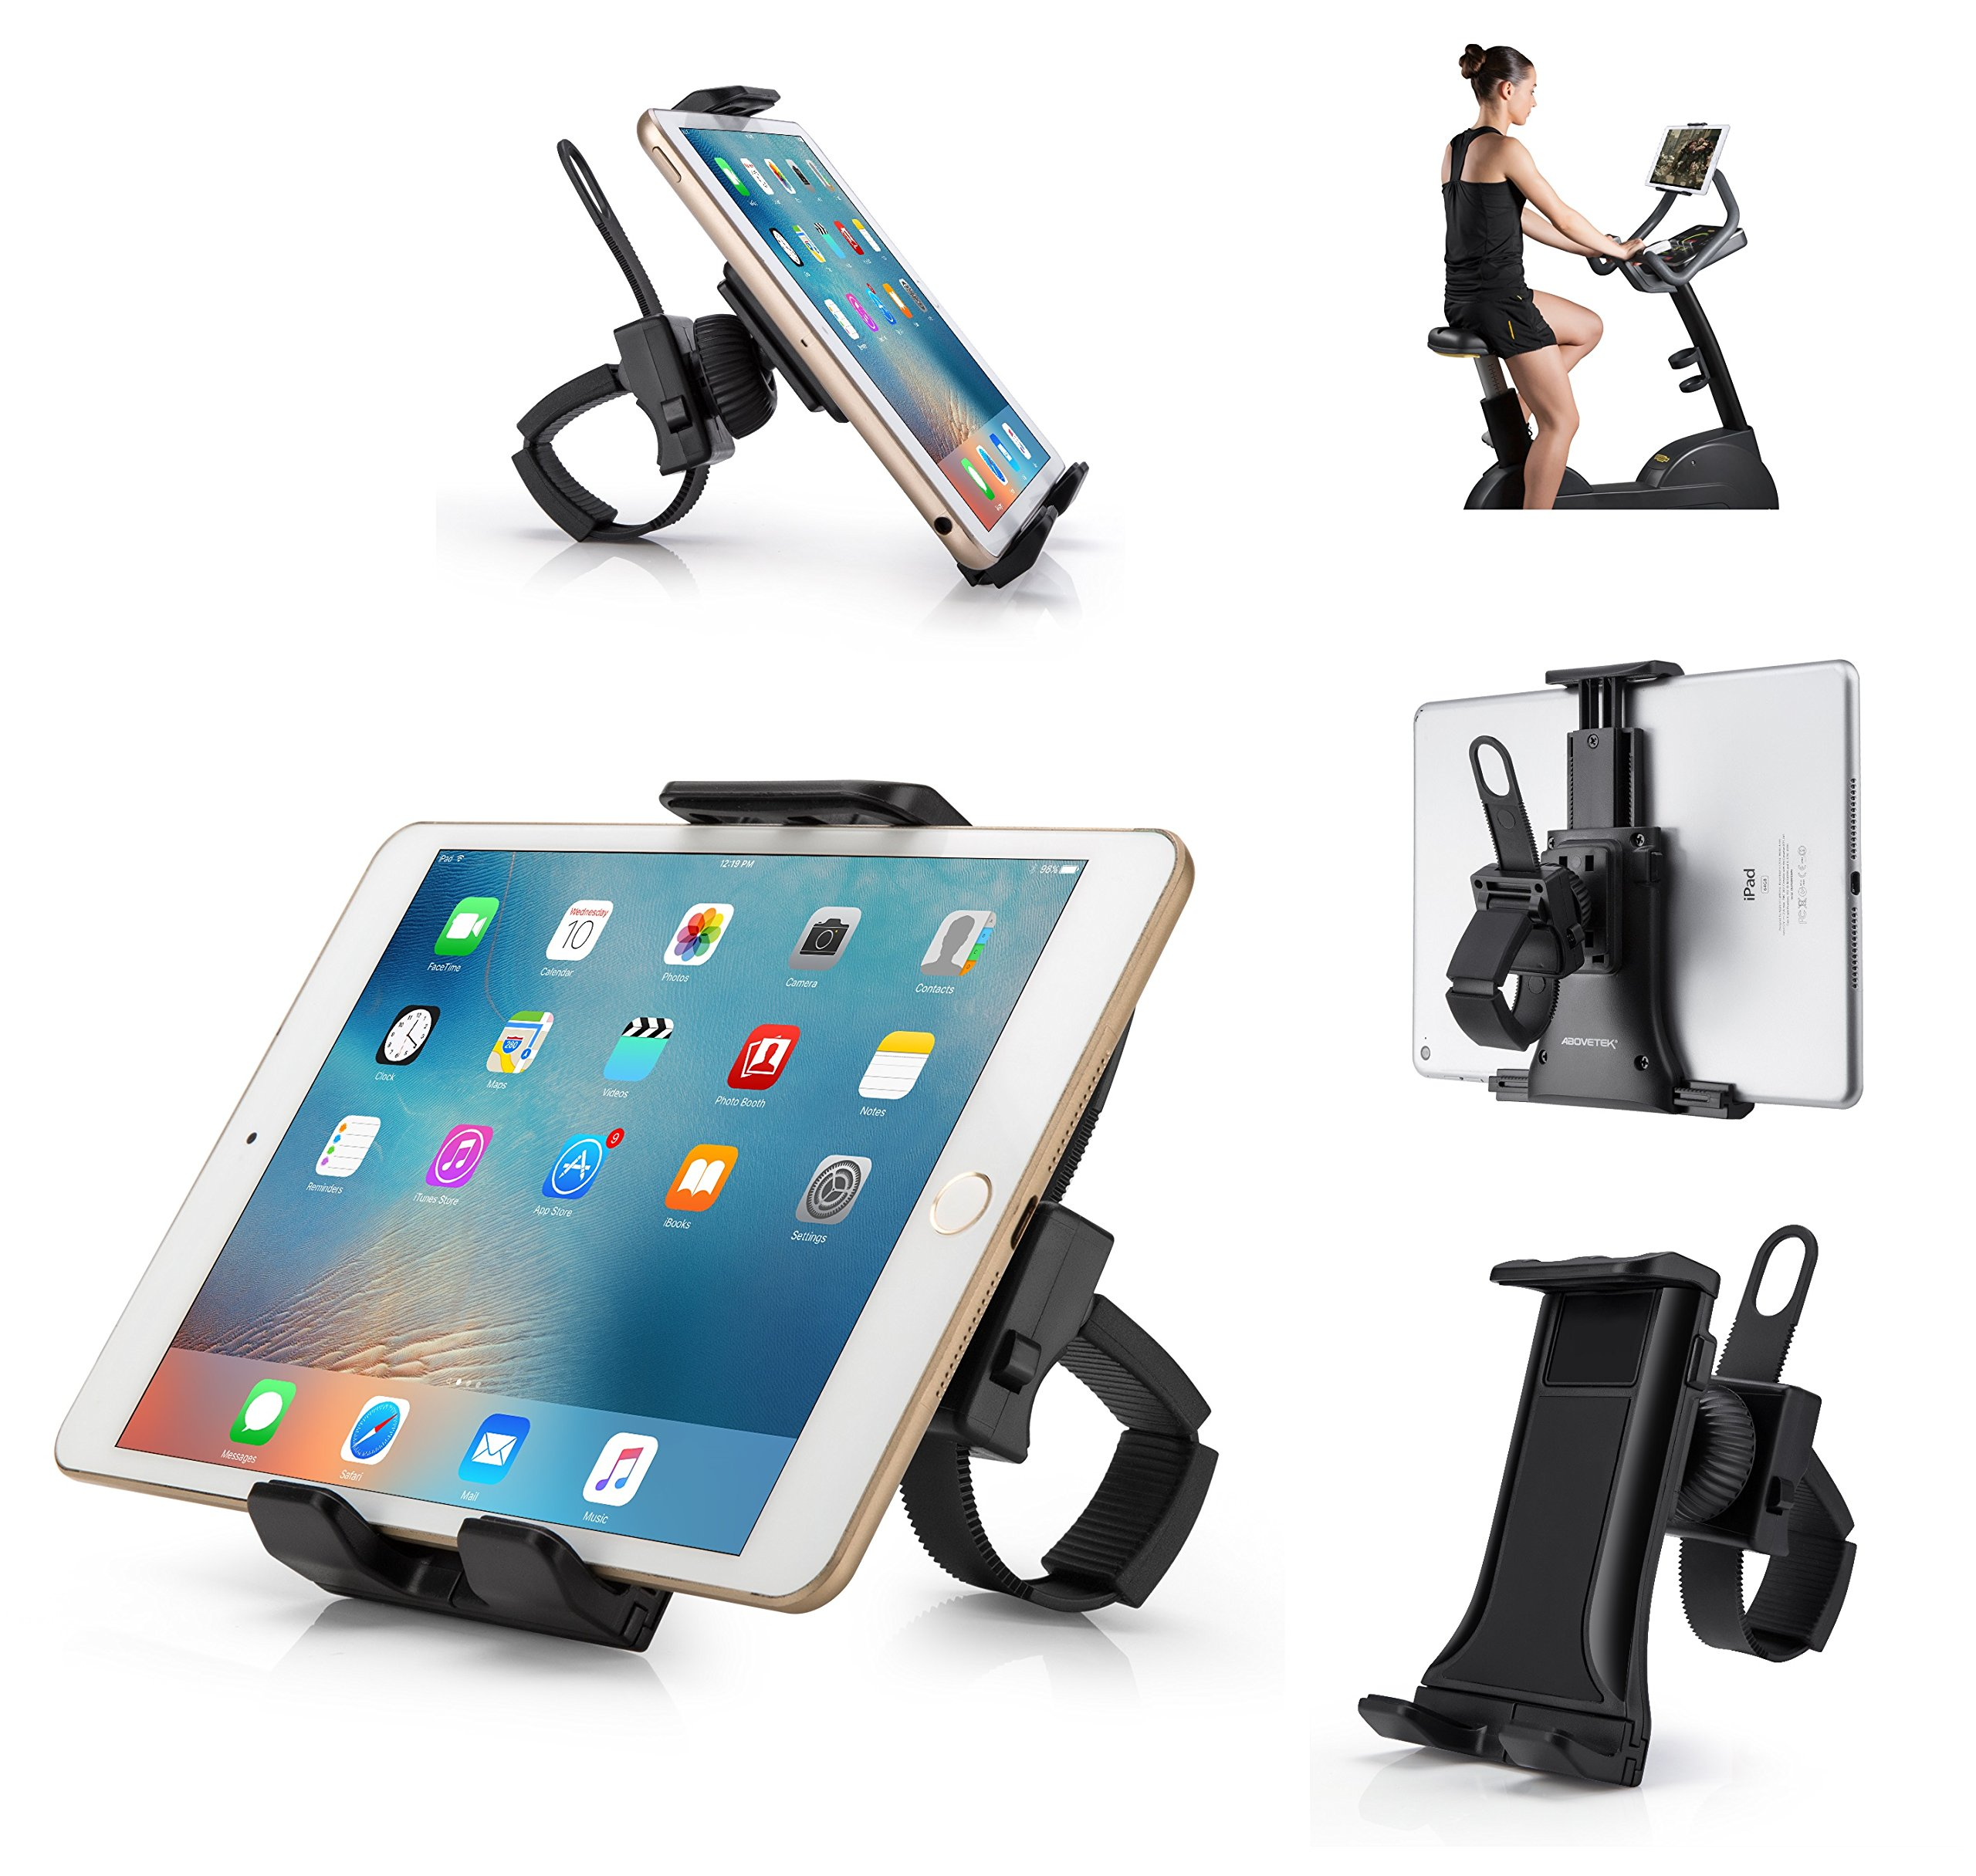 AboveTEK All-In-One Cycling Bike iPad/iPhone Mount, Portable Compact Tablet Holder for Indoor Gym Handlebar on Exercise Bikes & Treadmills, Adjustable 360° Swivel Stand For 3.5-12'' Tablets/Cell Phones by AboveTEK (Image #1)